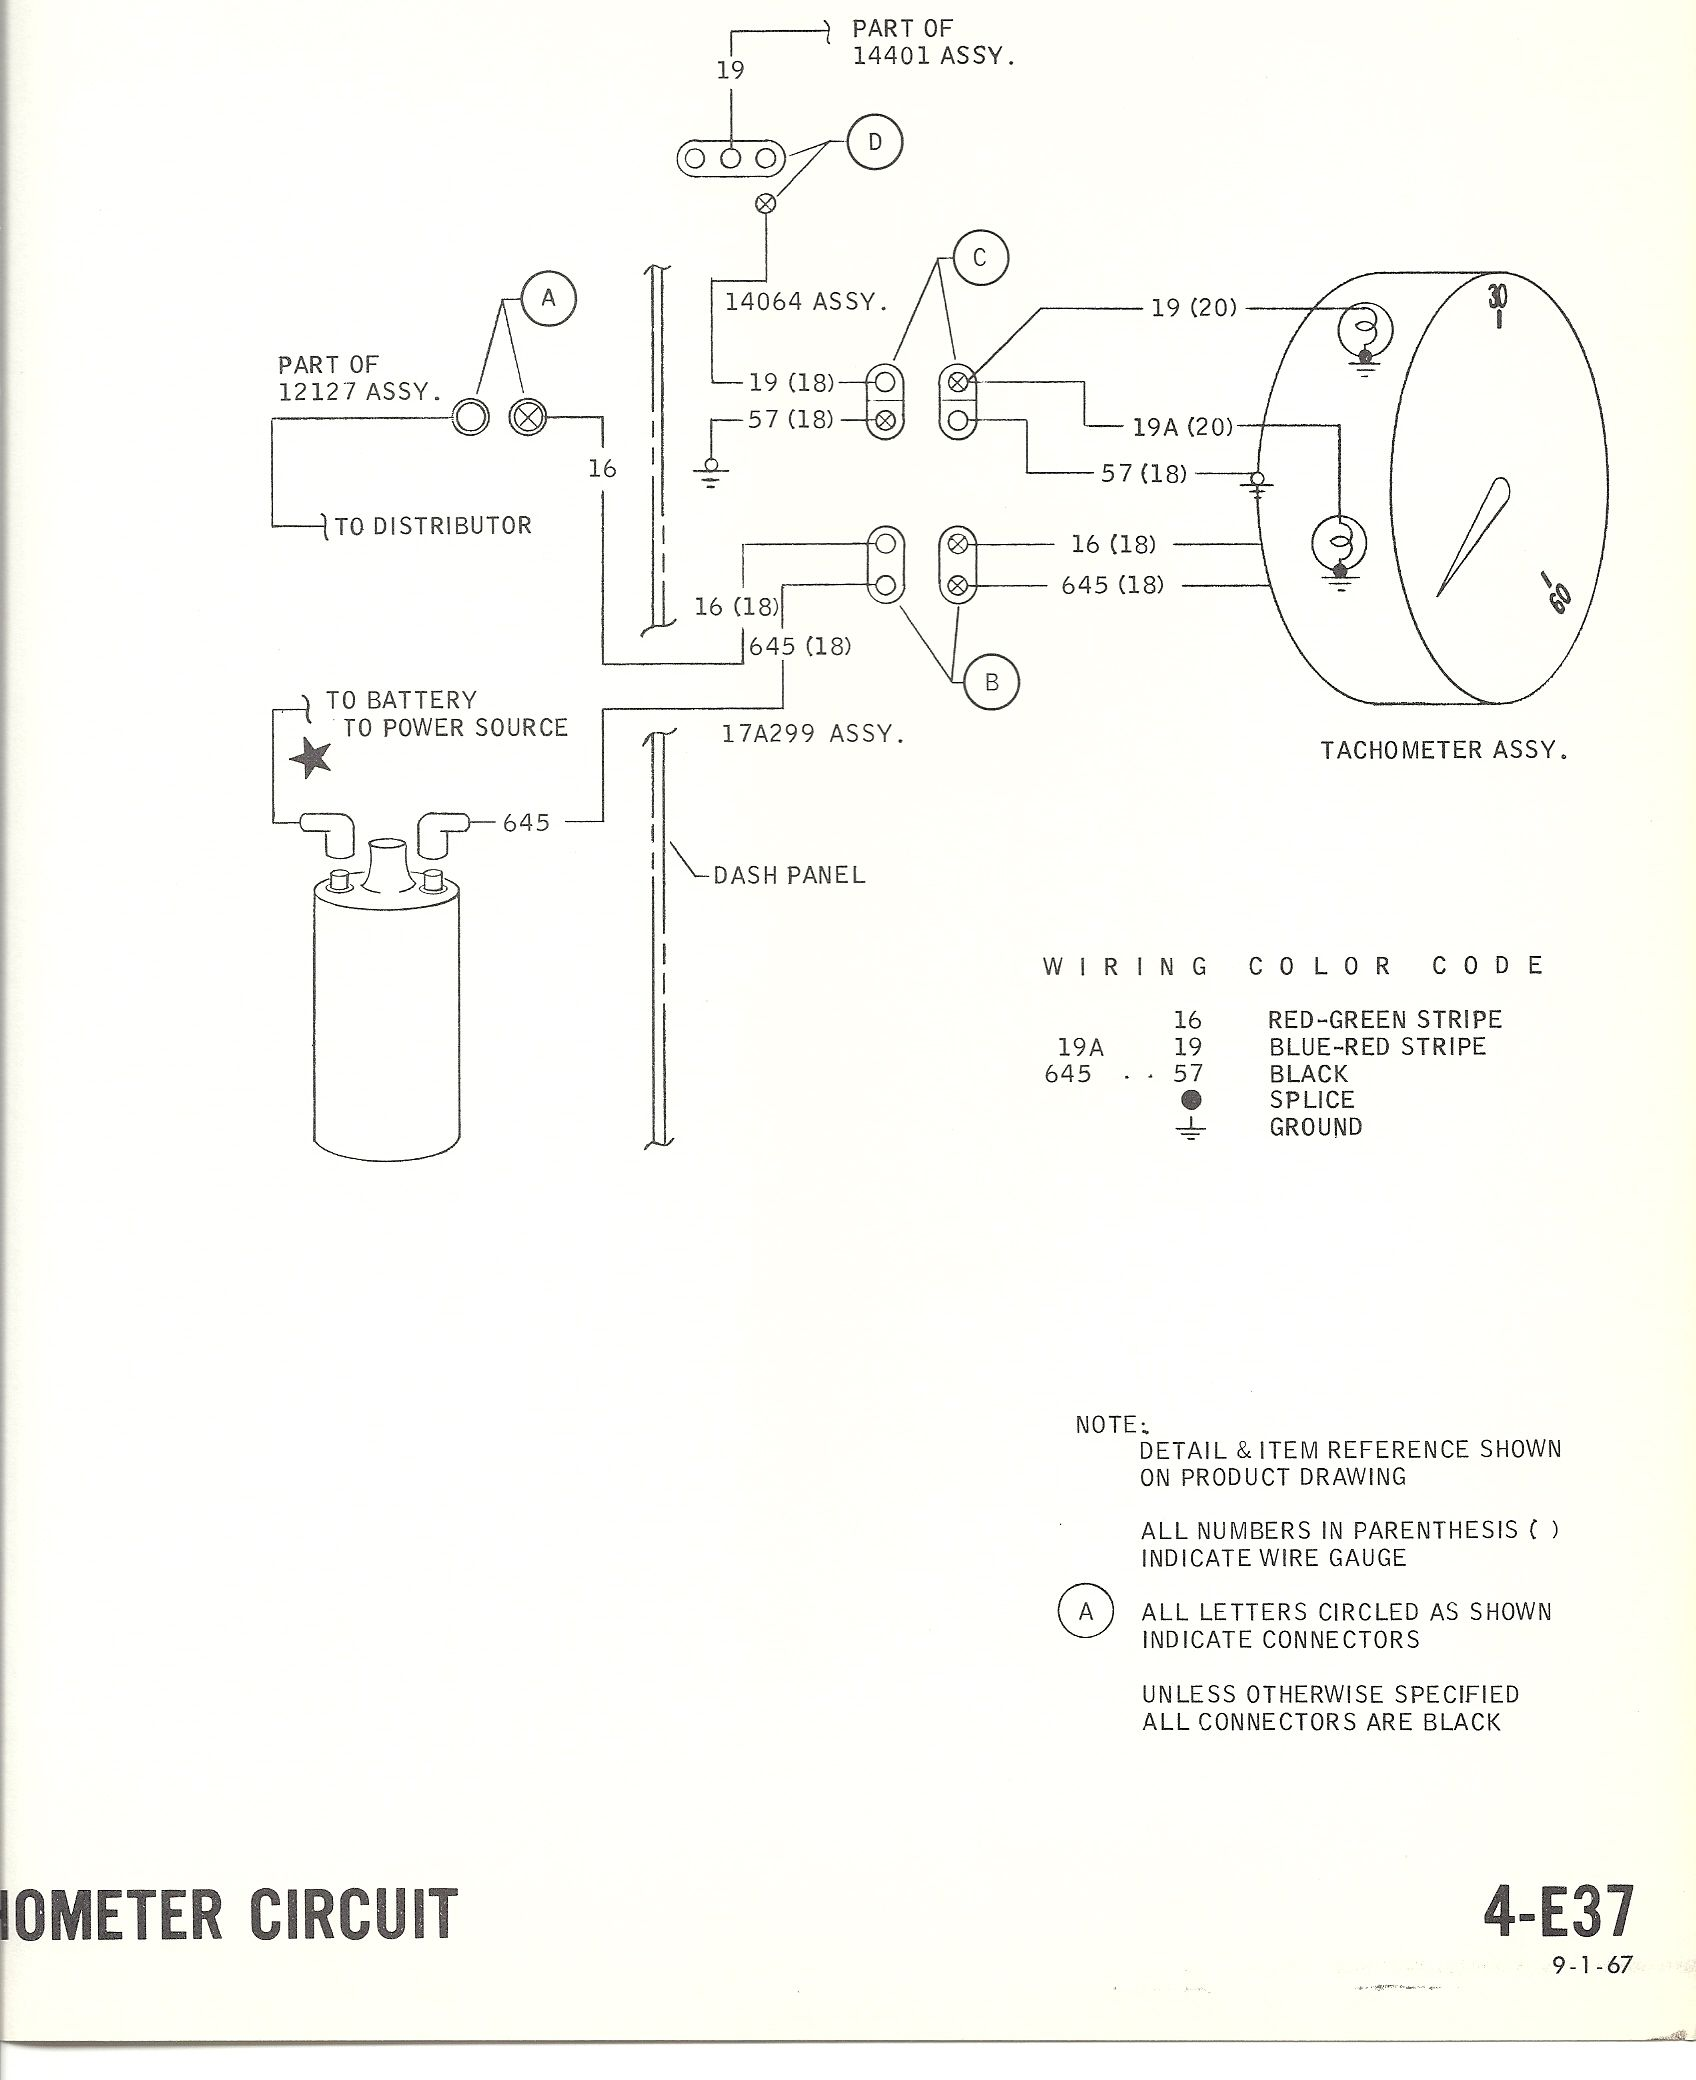 2b2f8e488a4c6a6b870c00f5af30de6c 1967 mustang wiring to tachometer mustang tachometer 1968 mustang alternator wiring diagram at webbmarketing.co